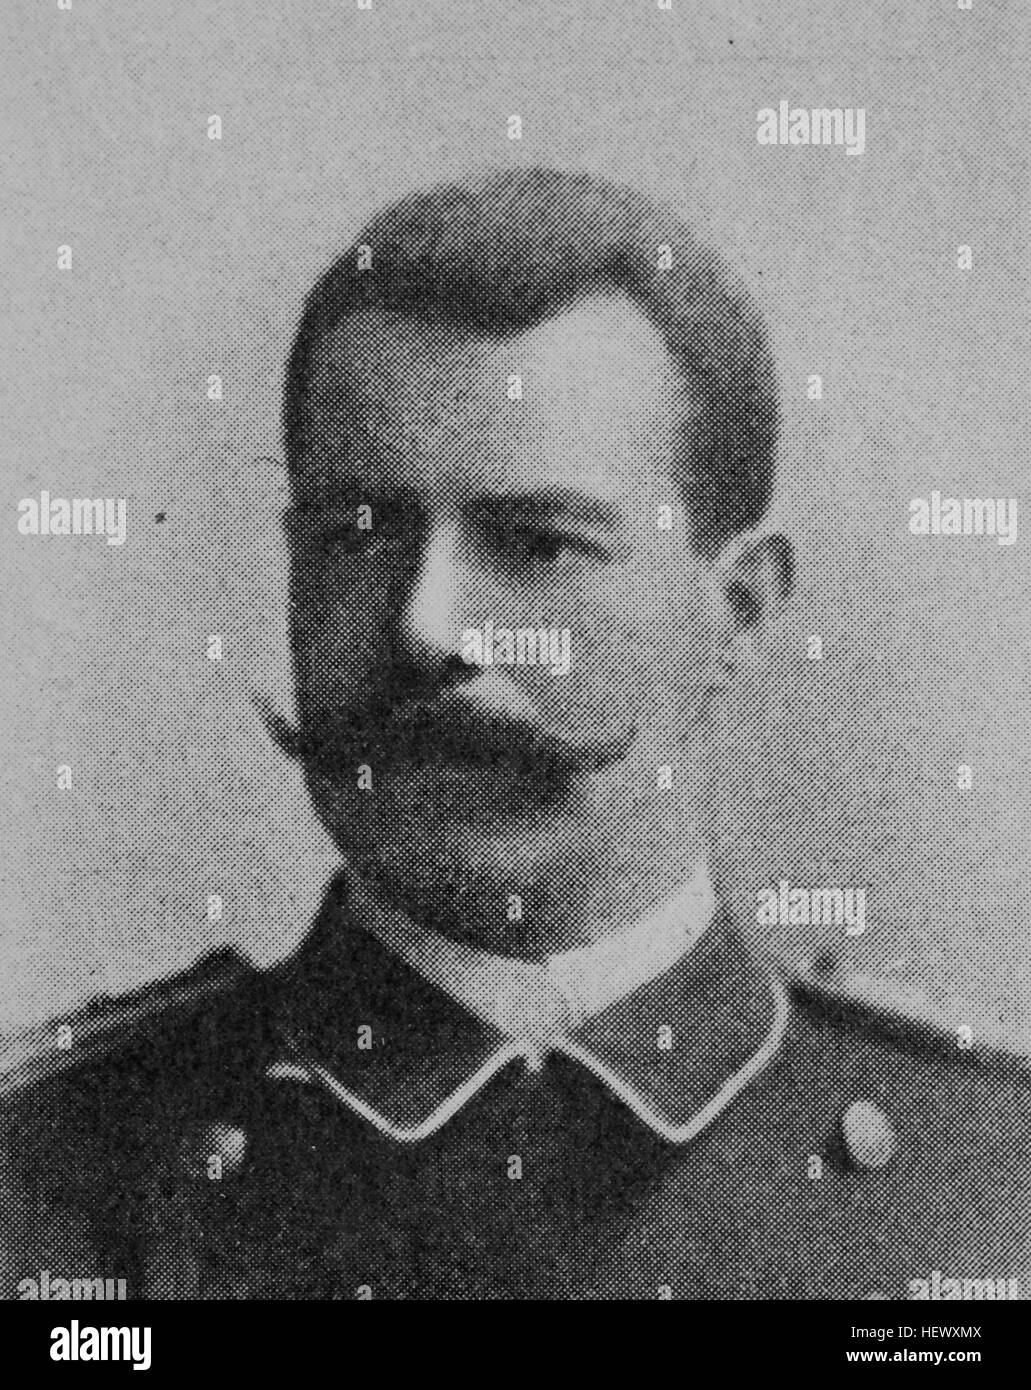 Tom von Prince, Tom Prince, 1866 - 1914. german Colonialist, plantation owners and officer of the colonial force - Stock Image